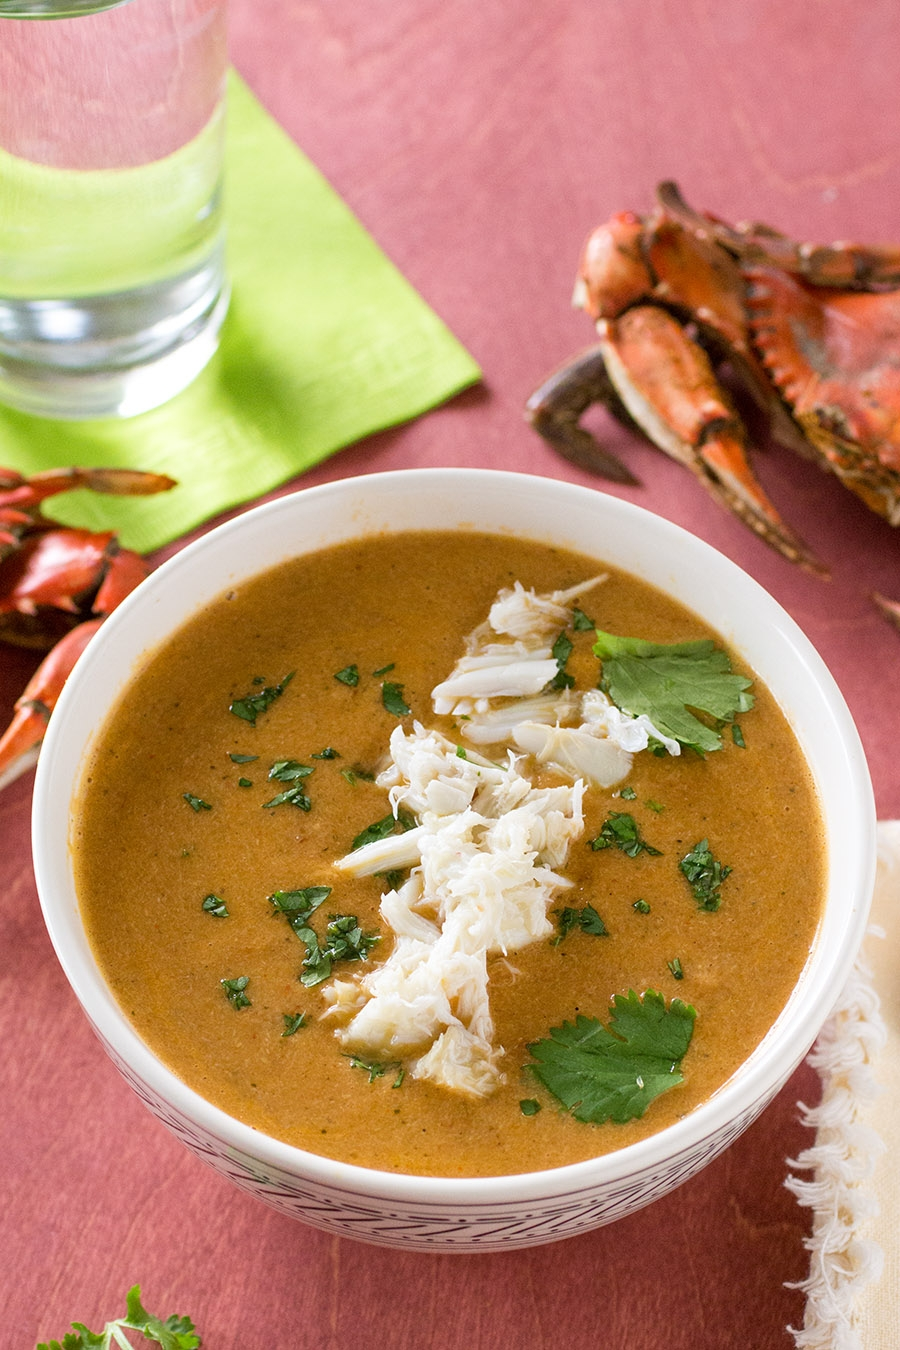 Roasted Red Pepper and Blue Crab Bisque from the Chesapeake Bay